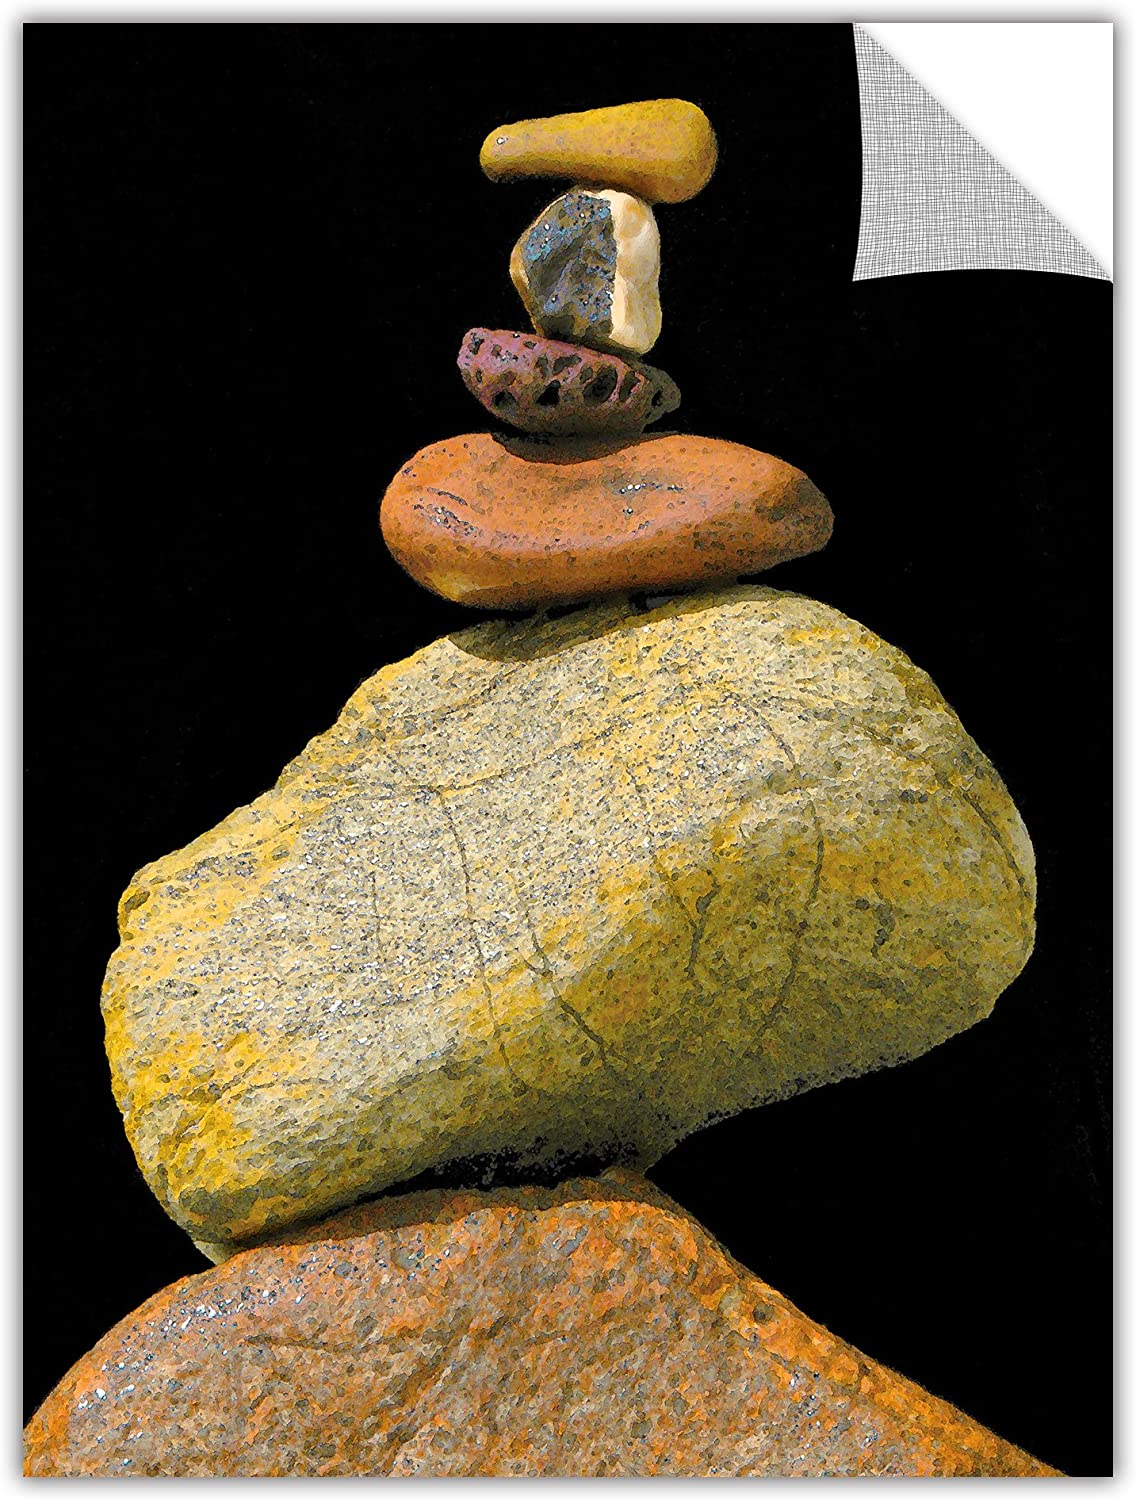 ArtWall ArtApeelz Cairn Study  Removable Graphic Wall Art by Dean Uhlinger, 18 by 24Inch